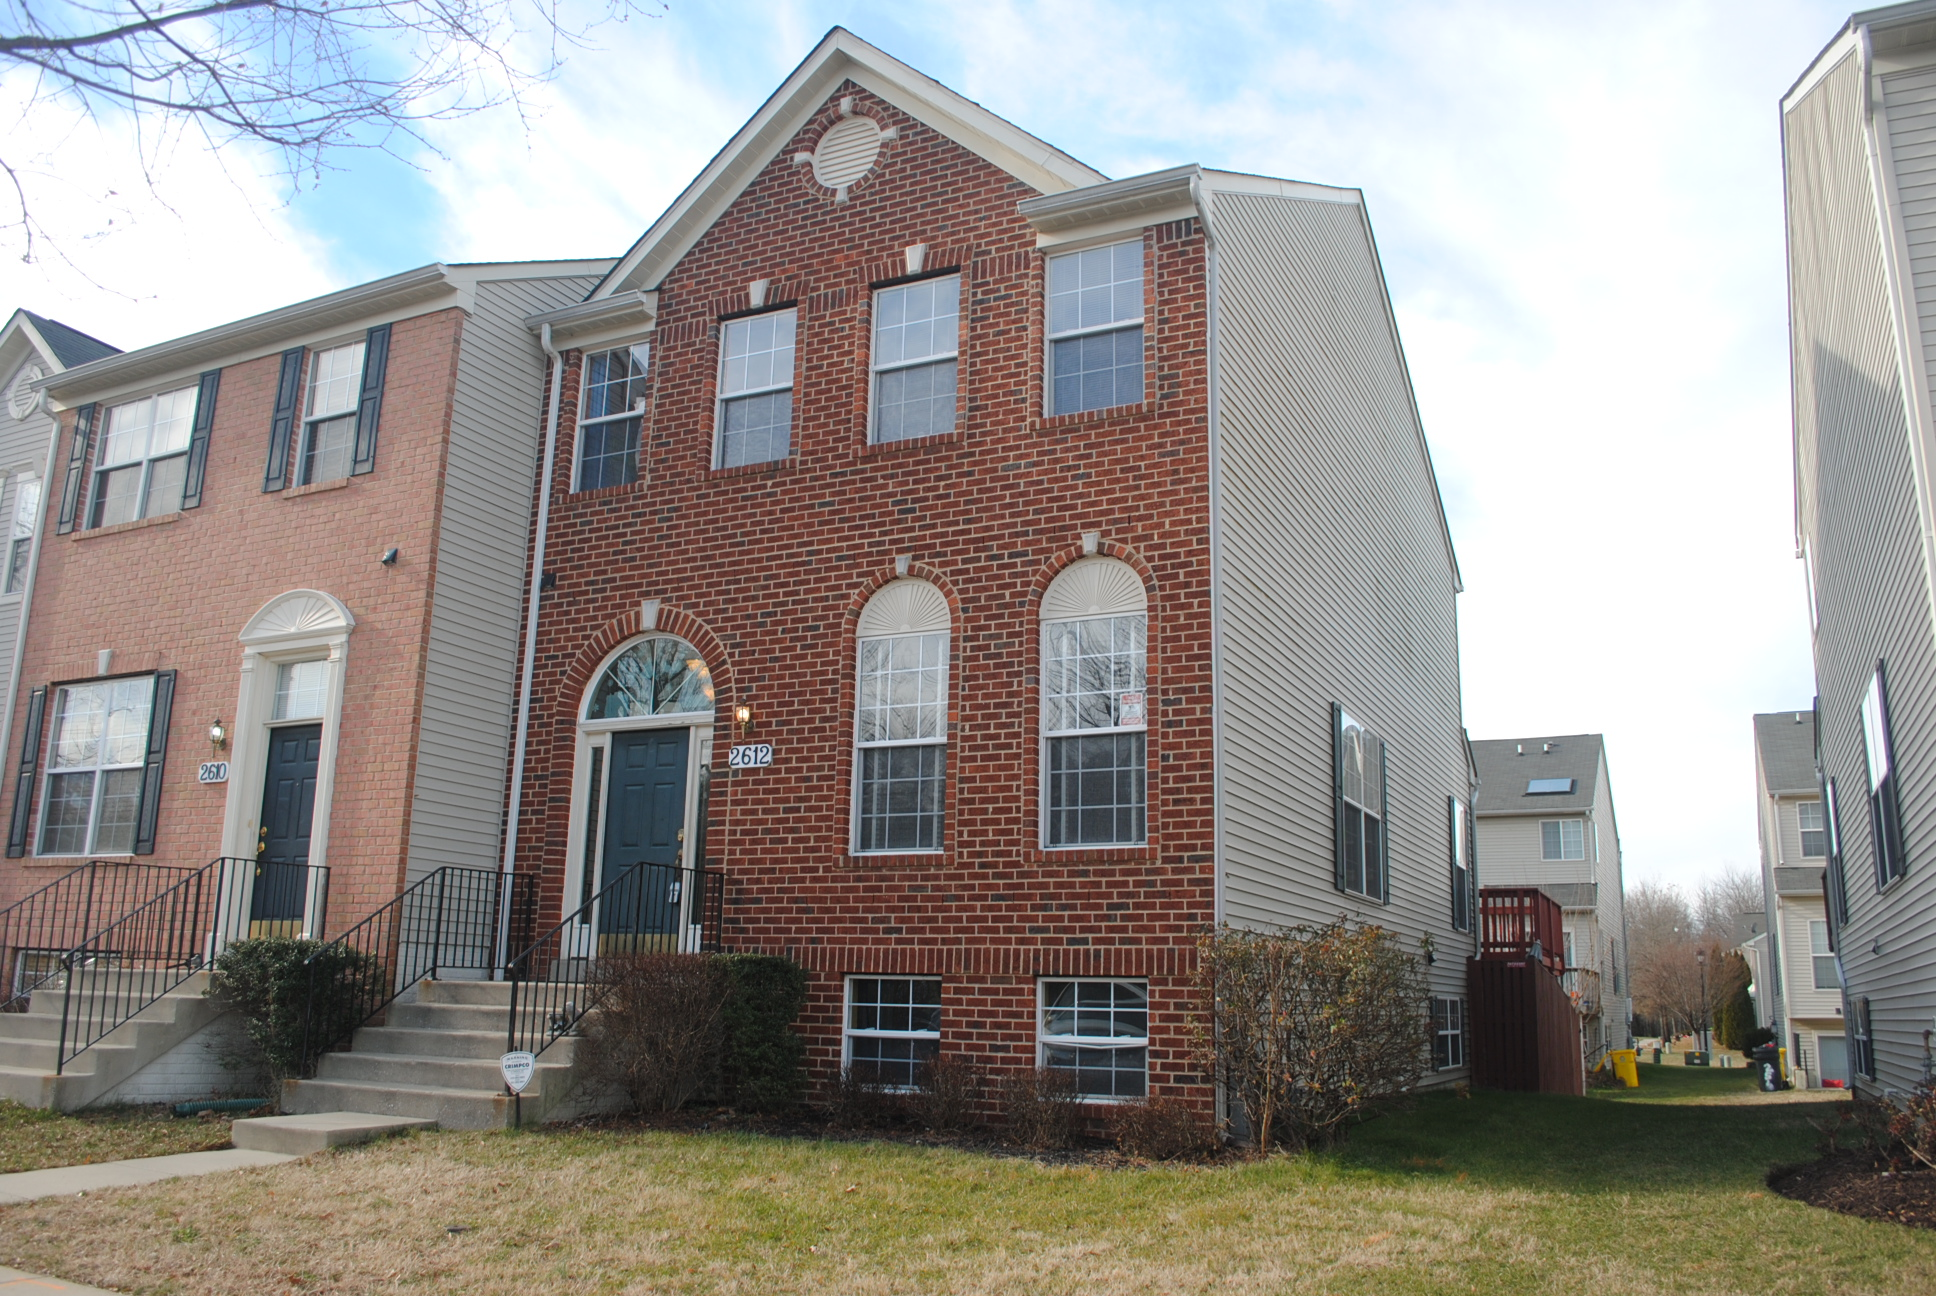 Seven Oaks home for rent near Fort Meade  MD